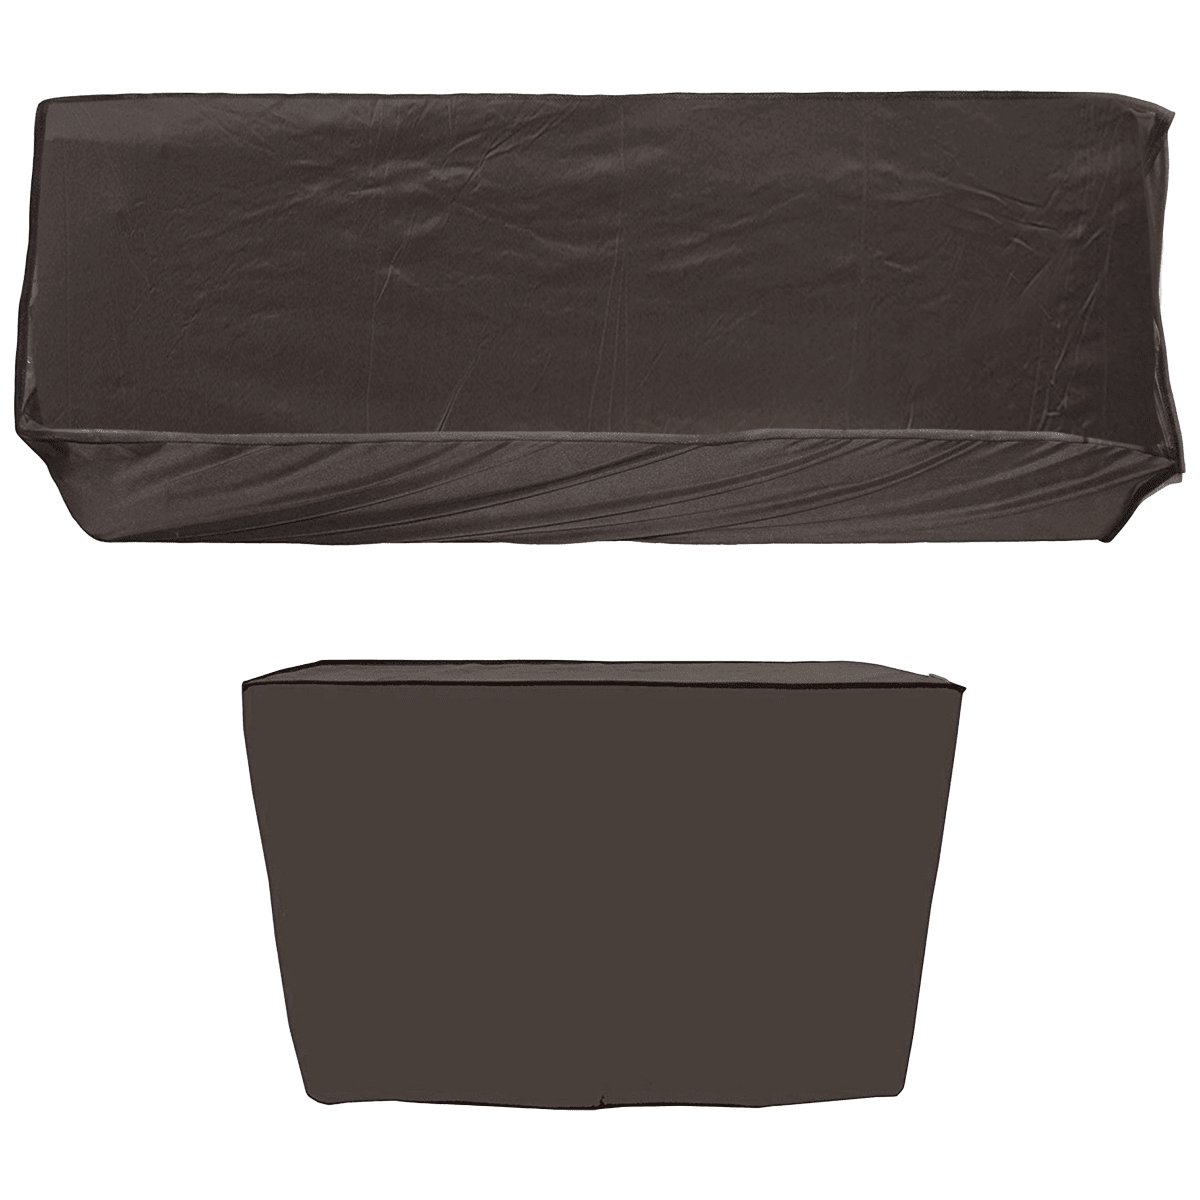 Kuber Industries Cover For Air Conditioner (For Indoor and Outdoor Unit, CTKTC034047, Brown)